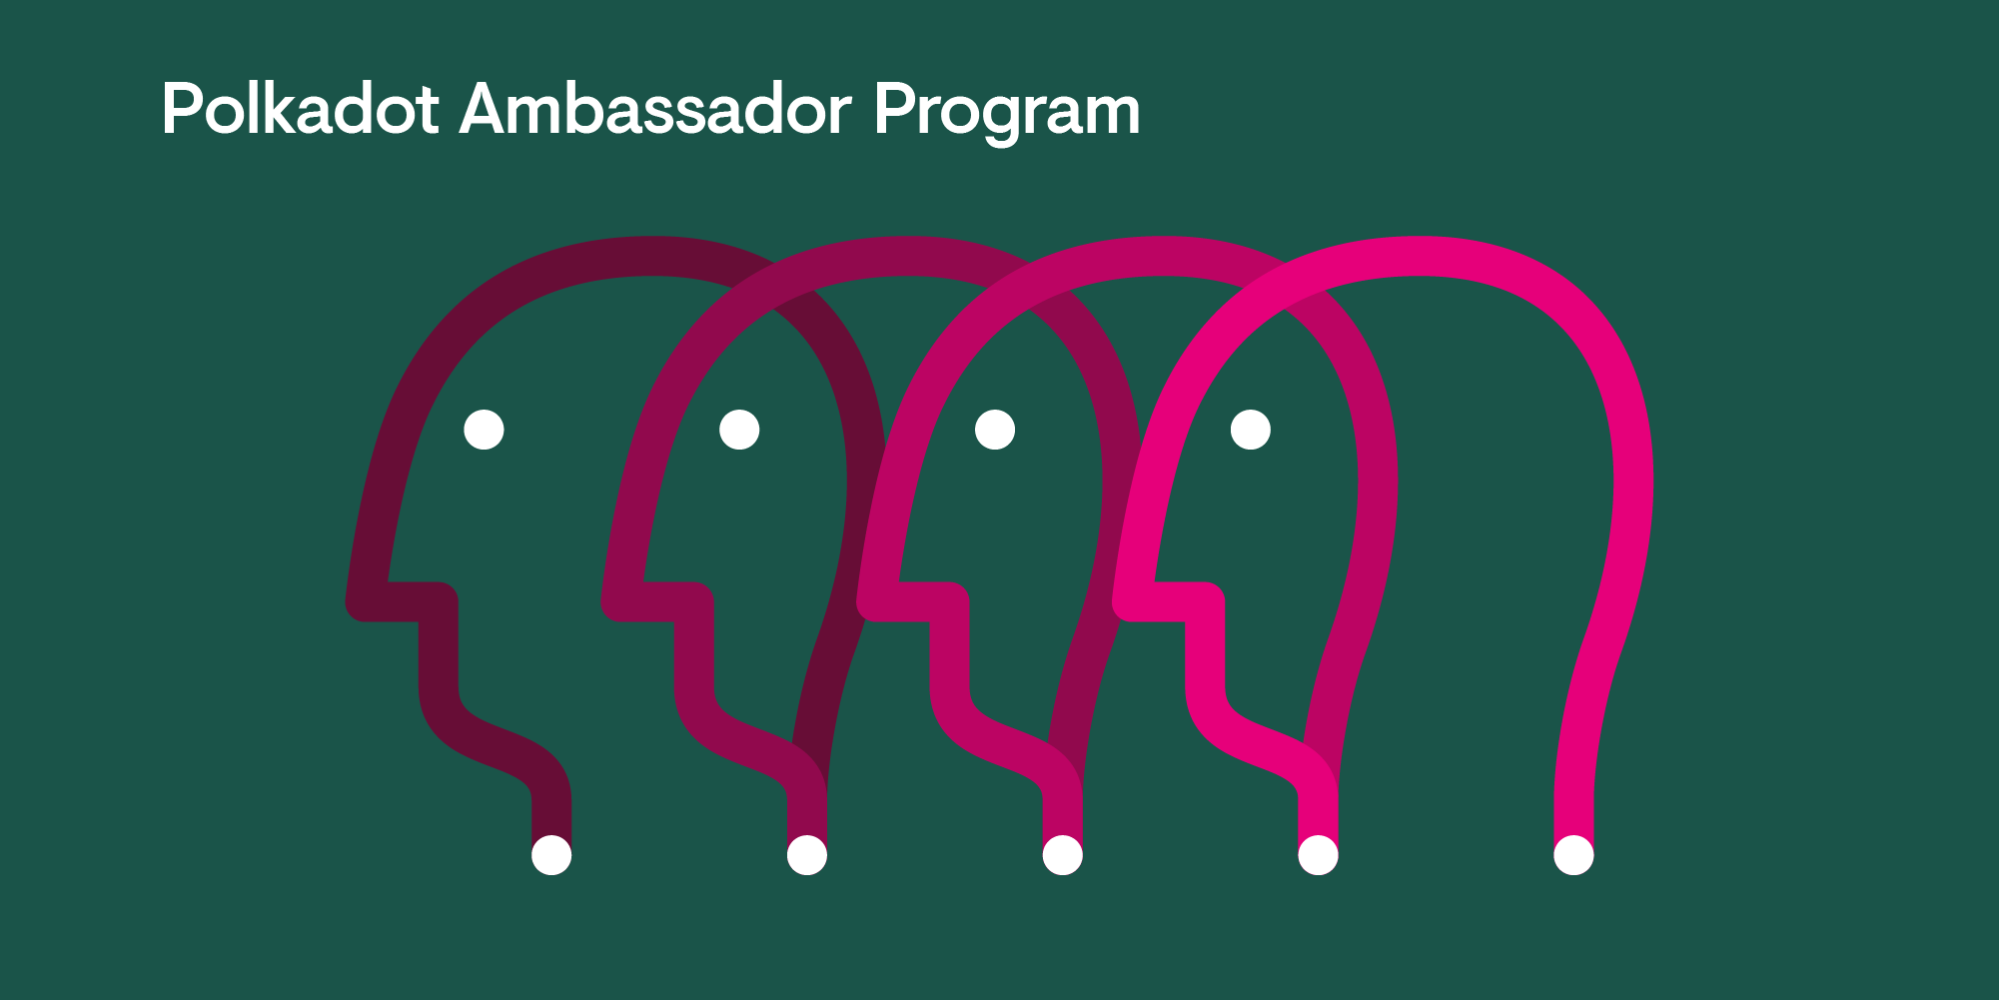 Join the Polkadot Ambassador Program